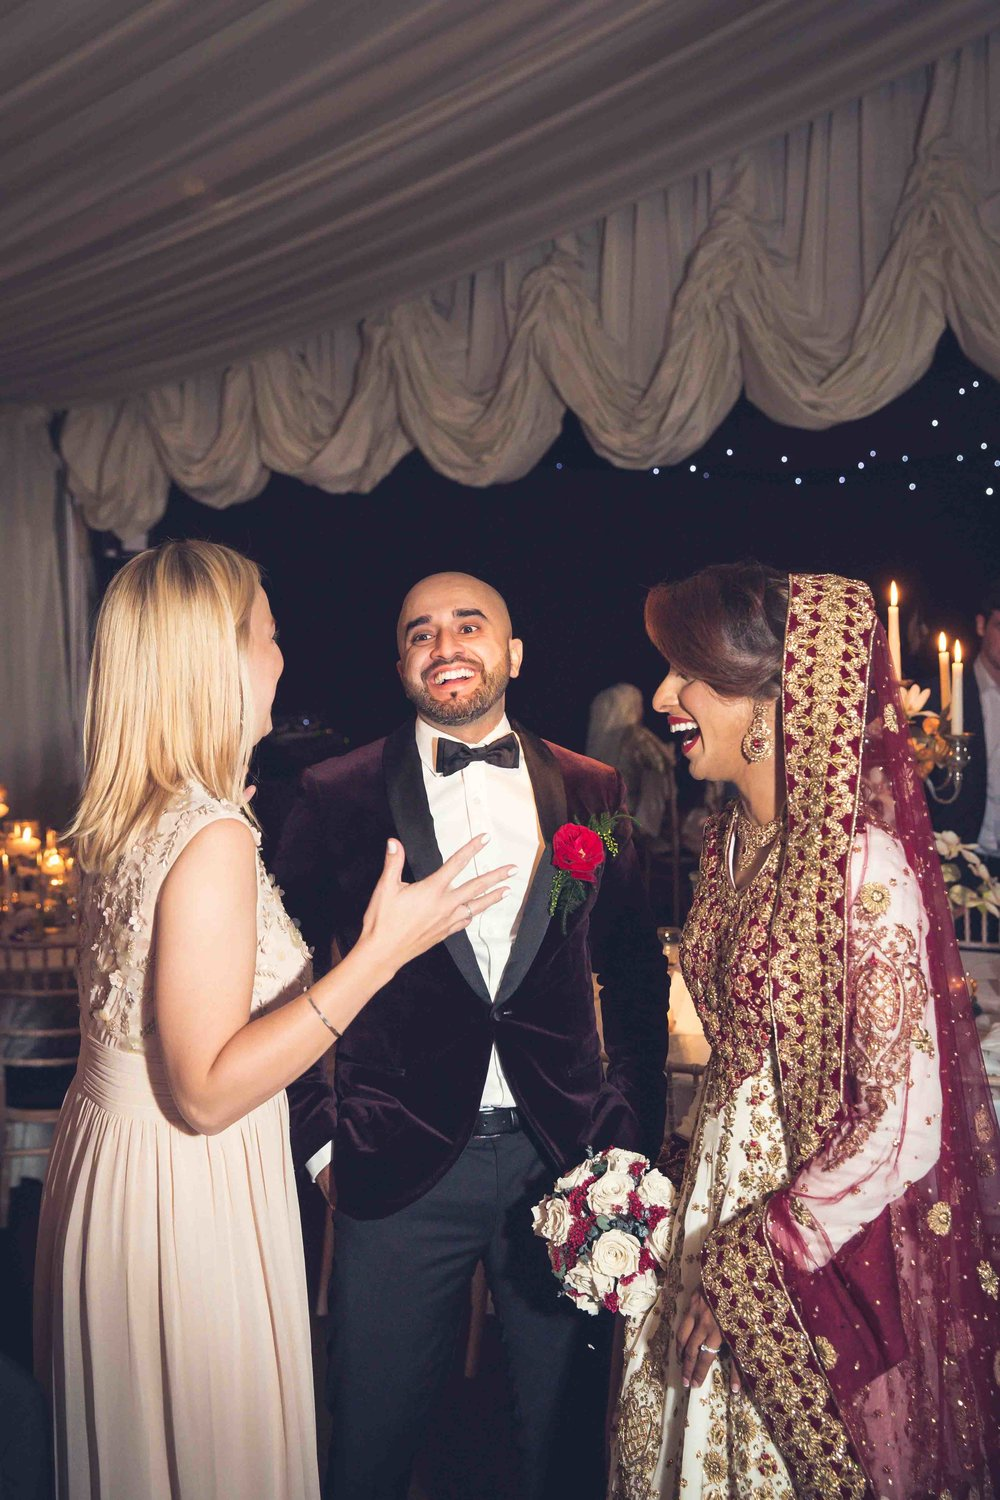 Asian Wedding Photographer Opu Sultan Photography Lyme Park Scotland Edinburgh Glasgow London Manchester Liverpool Birmingham Wedding Photos prewed shoot Azman & Saira Blog-141.jpg